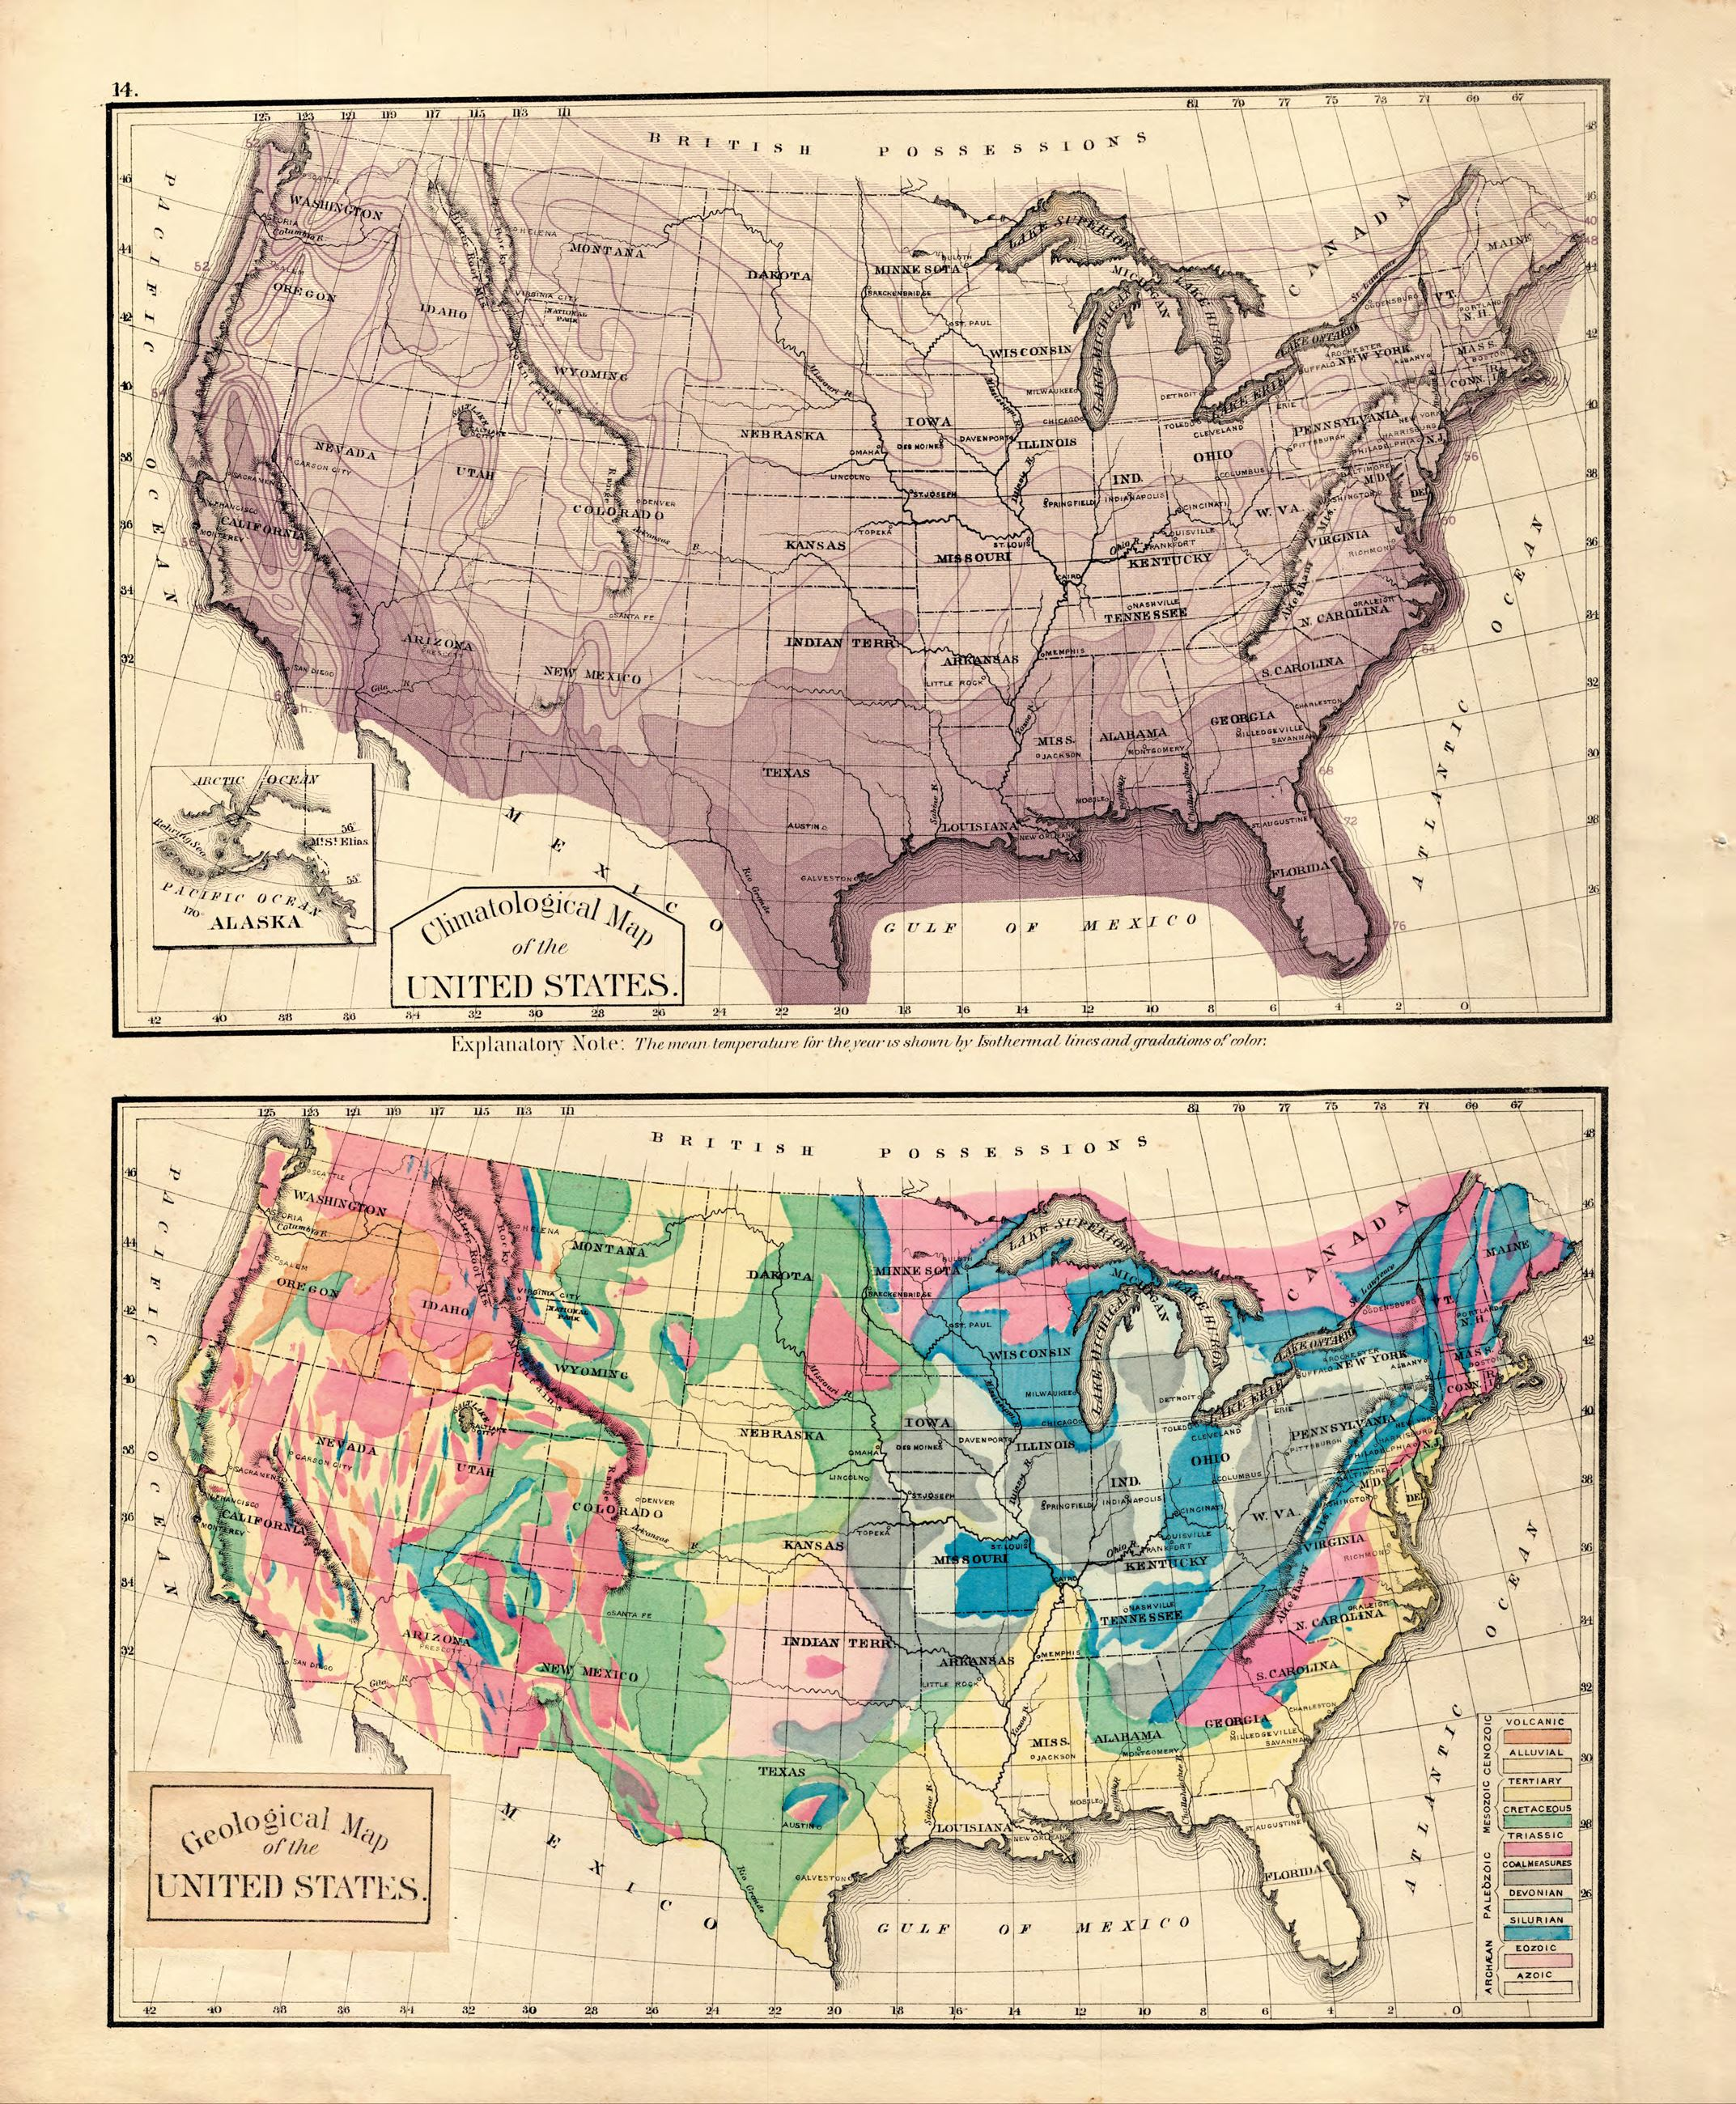 7 14 Climatological and Geological Maps